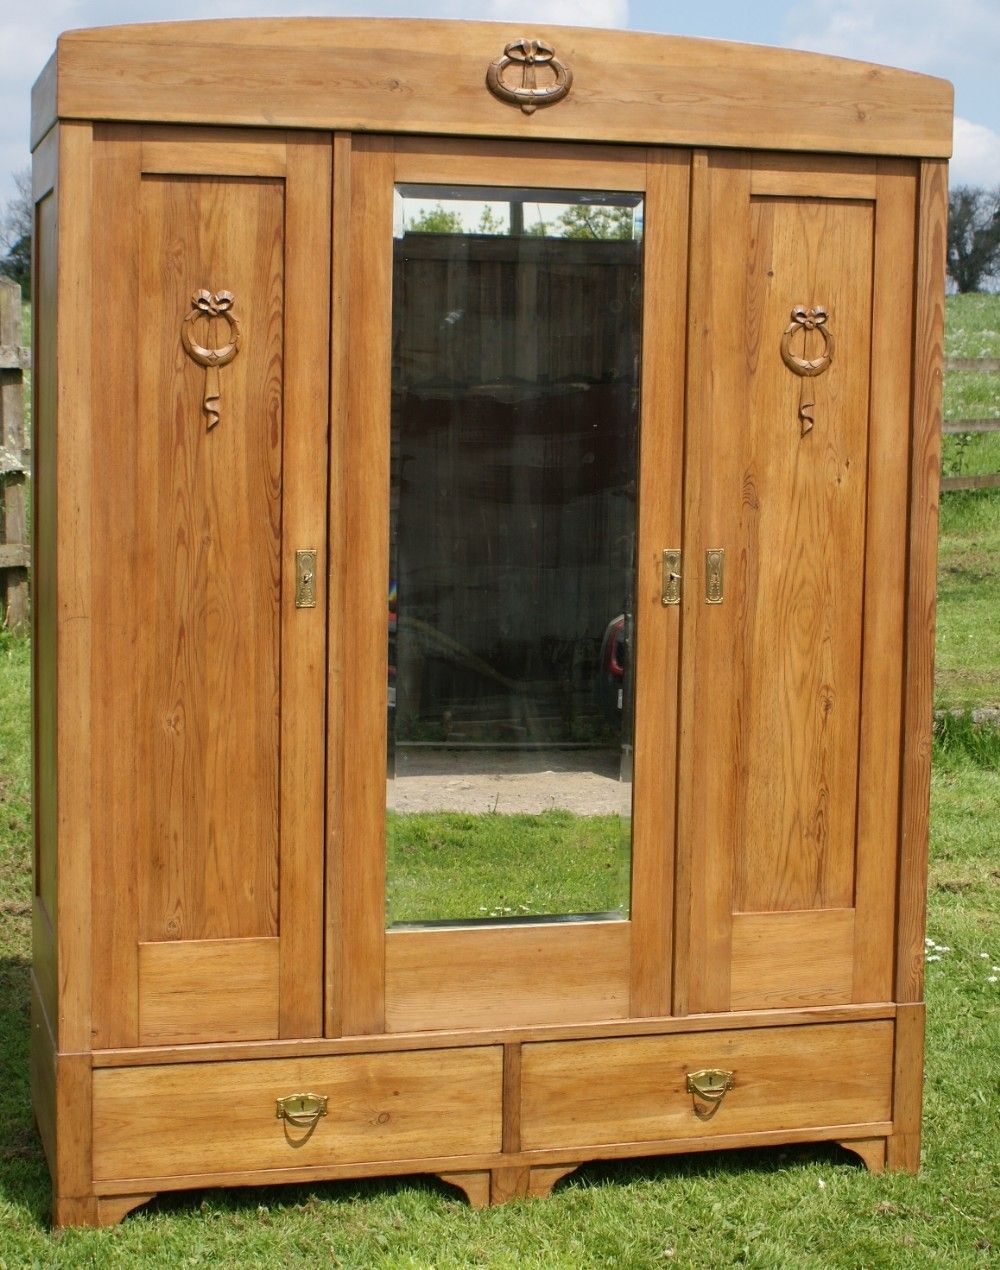 Charmant A 19th CENTURY LARGE ANTIQUE GERMAN SOLID PINE ARMOIRE WARDROBE